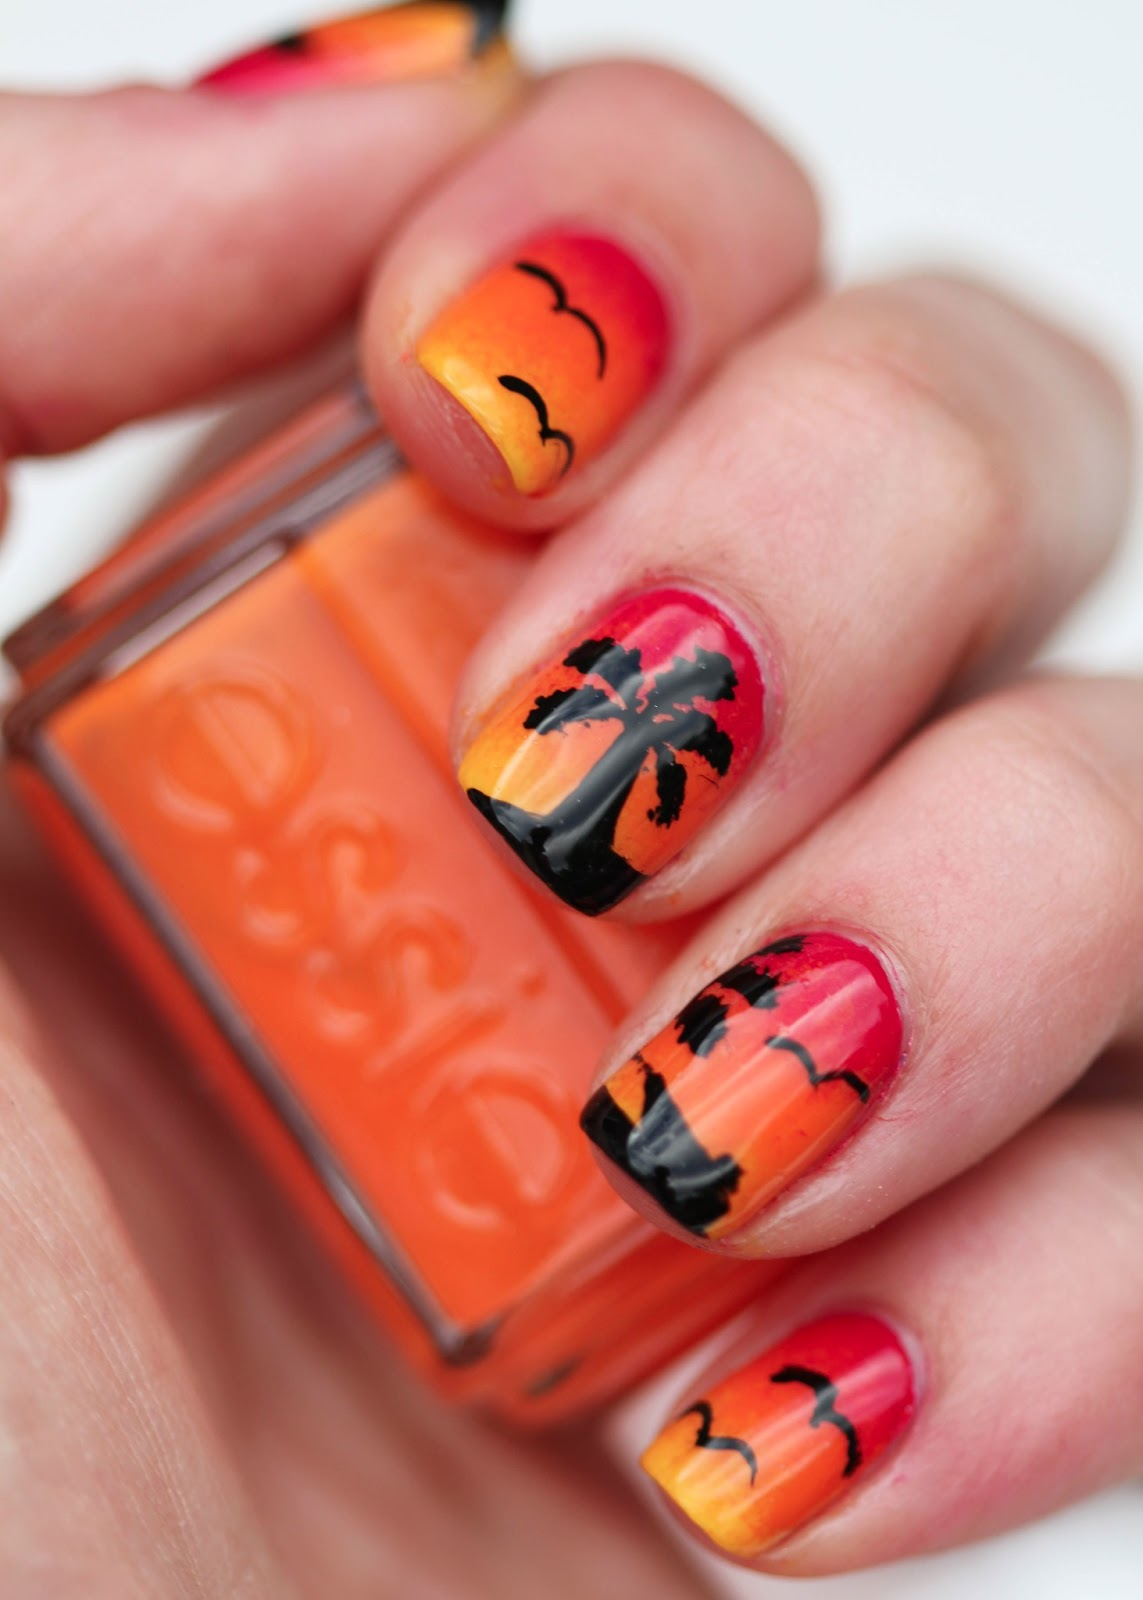 Fundamentally Flawless Sunset Nail Art With Palm Trees And Birds - Sunset  nail art designs - 15 Acrylic Nail Designs And Ideas That Will Blow Your Mind